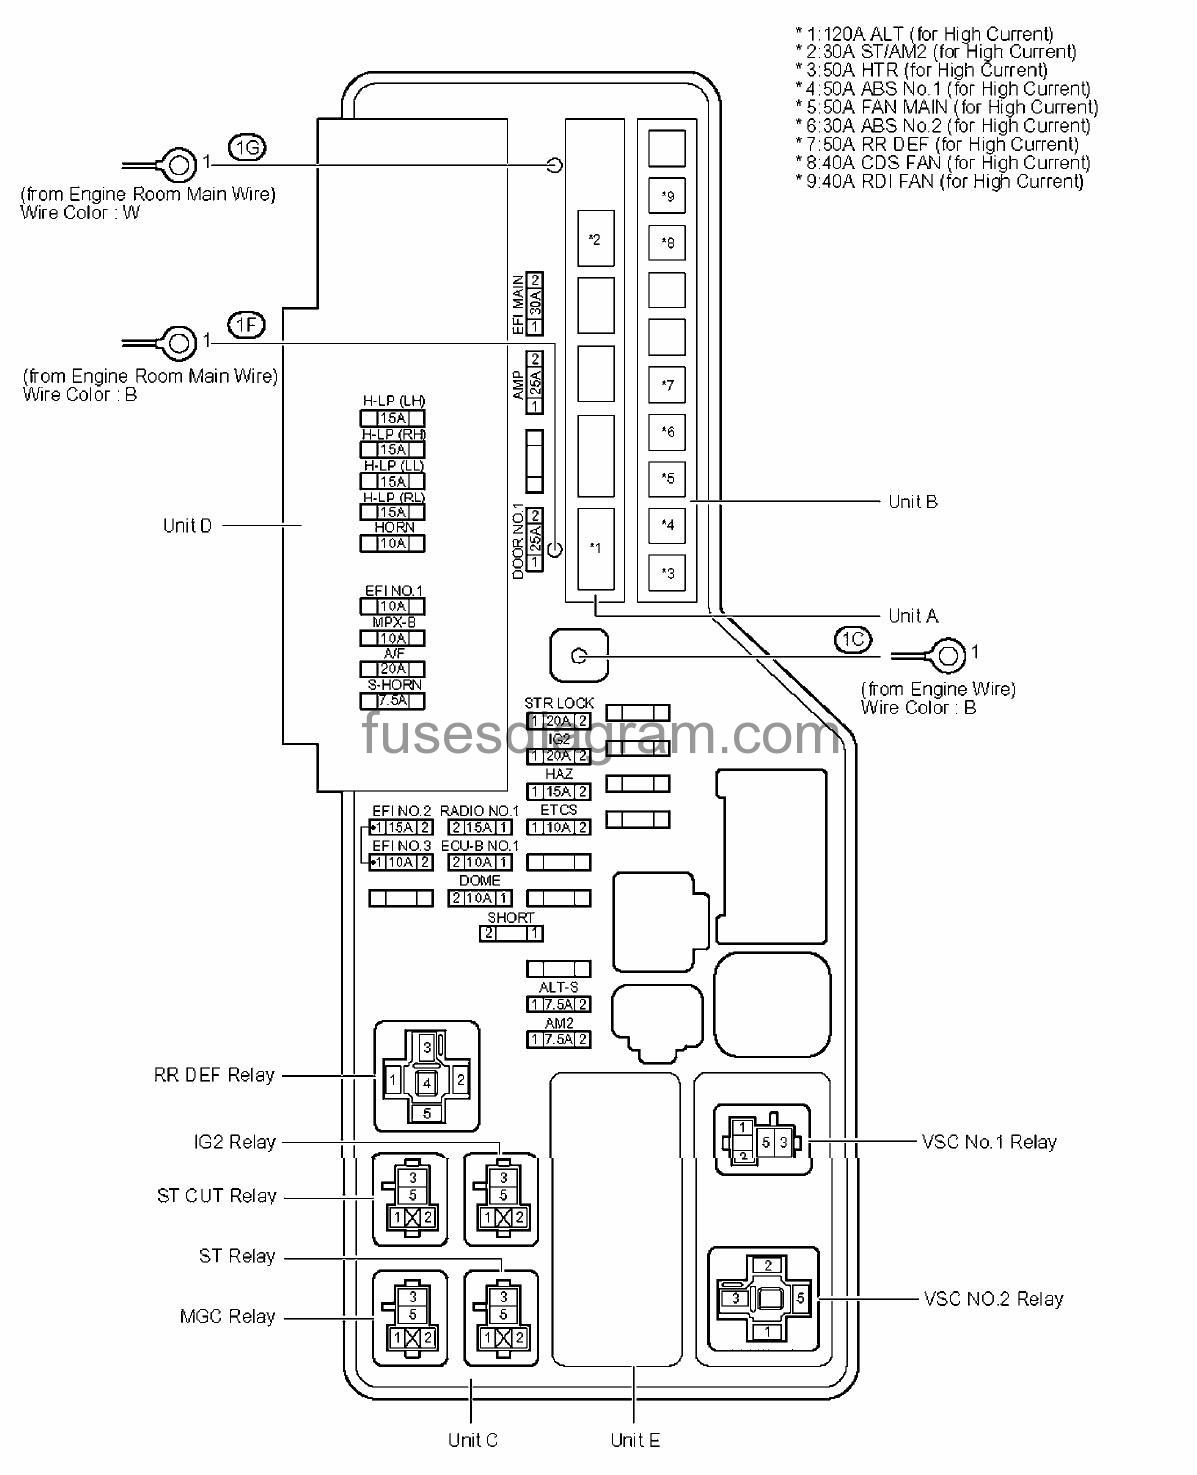 2010 Toyota Camry Fuse Box Diagram Wire Center 1999 Xv40 Rh Fusesdiagram Com 1995 2002